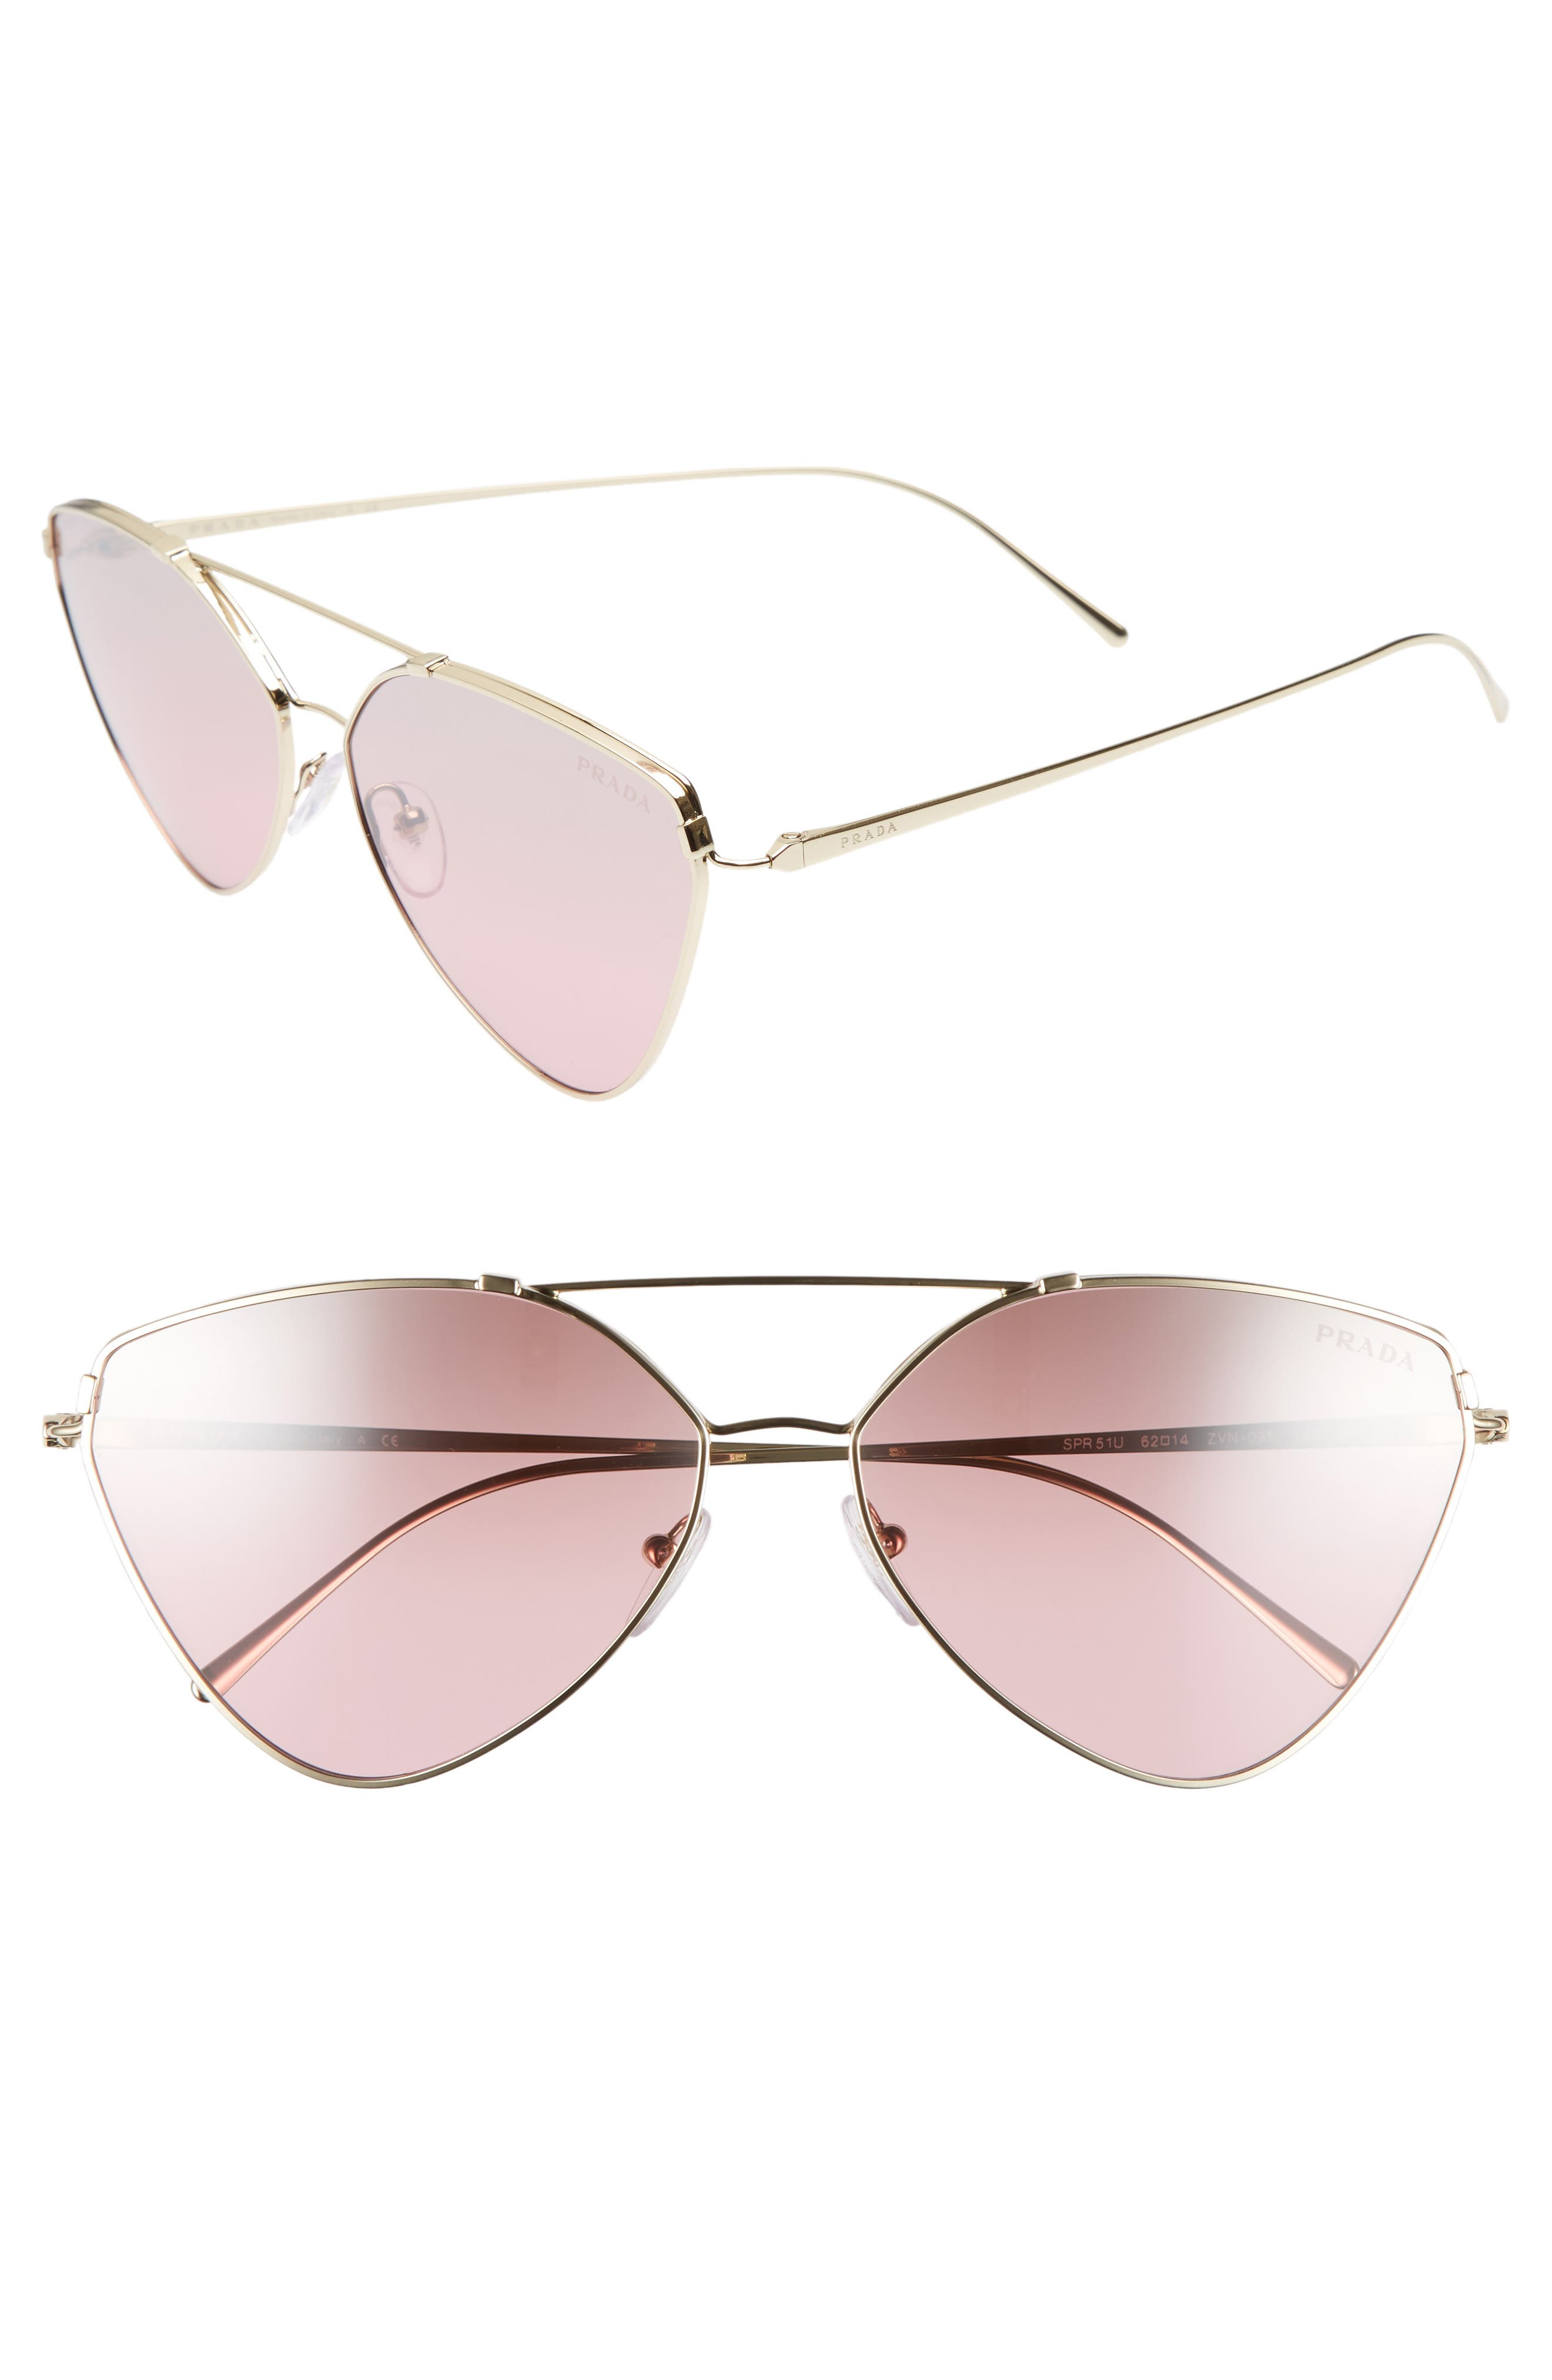 62mm Gradient Aviator Sunglasses,                         Main,                         color, PALE GOLD